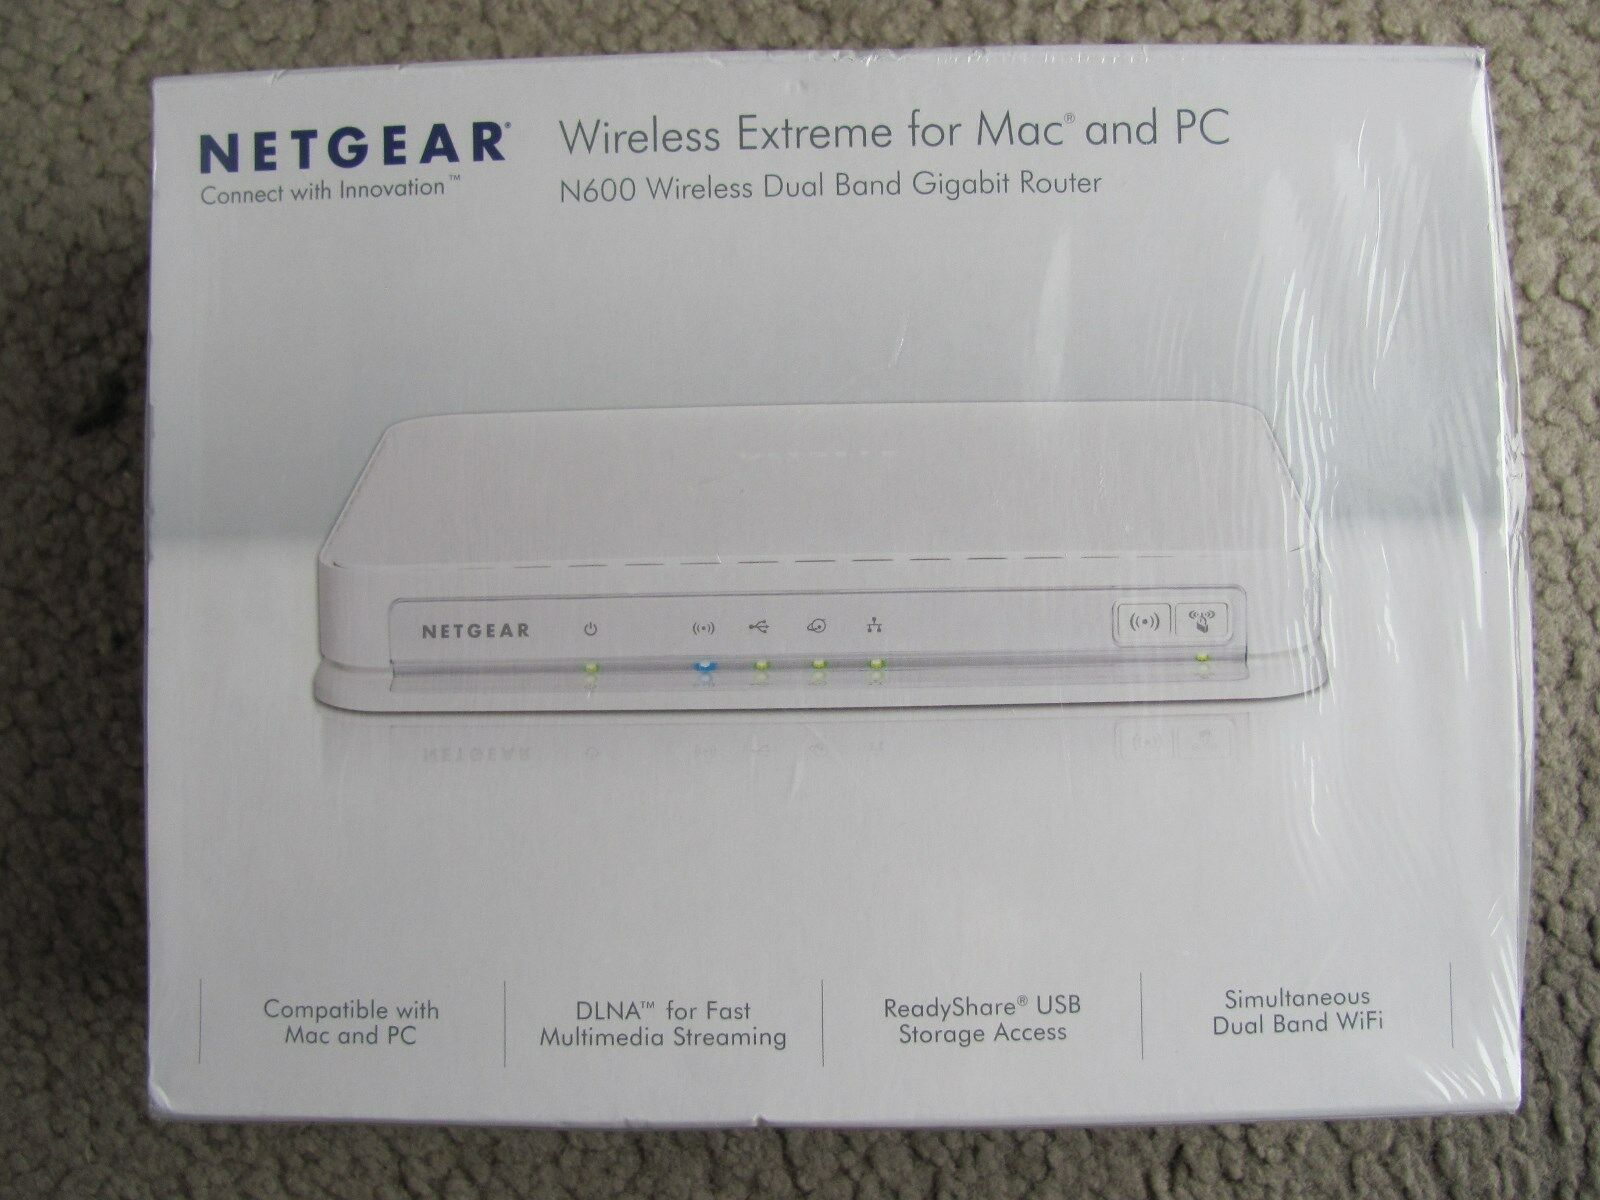 Netgear wndrmac wireless extreme for mac and pc wndrmac-100aus.